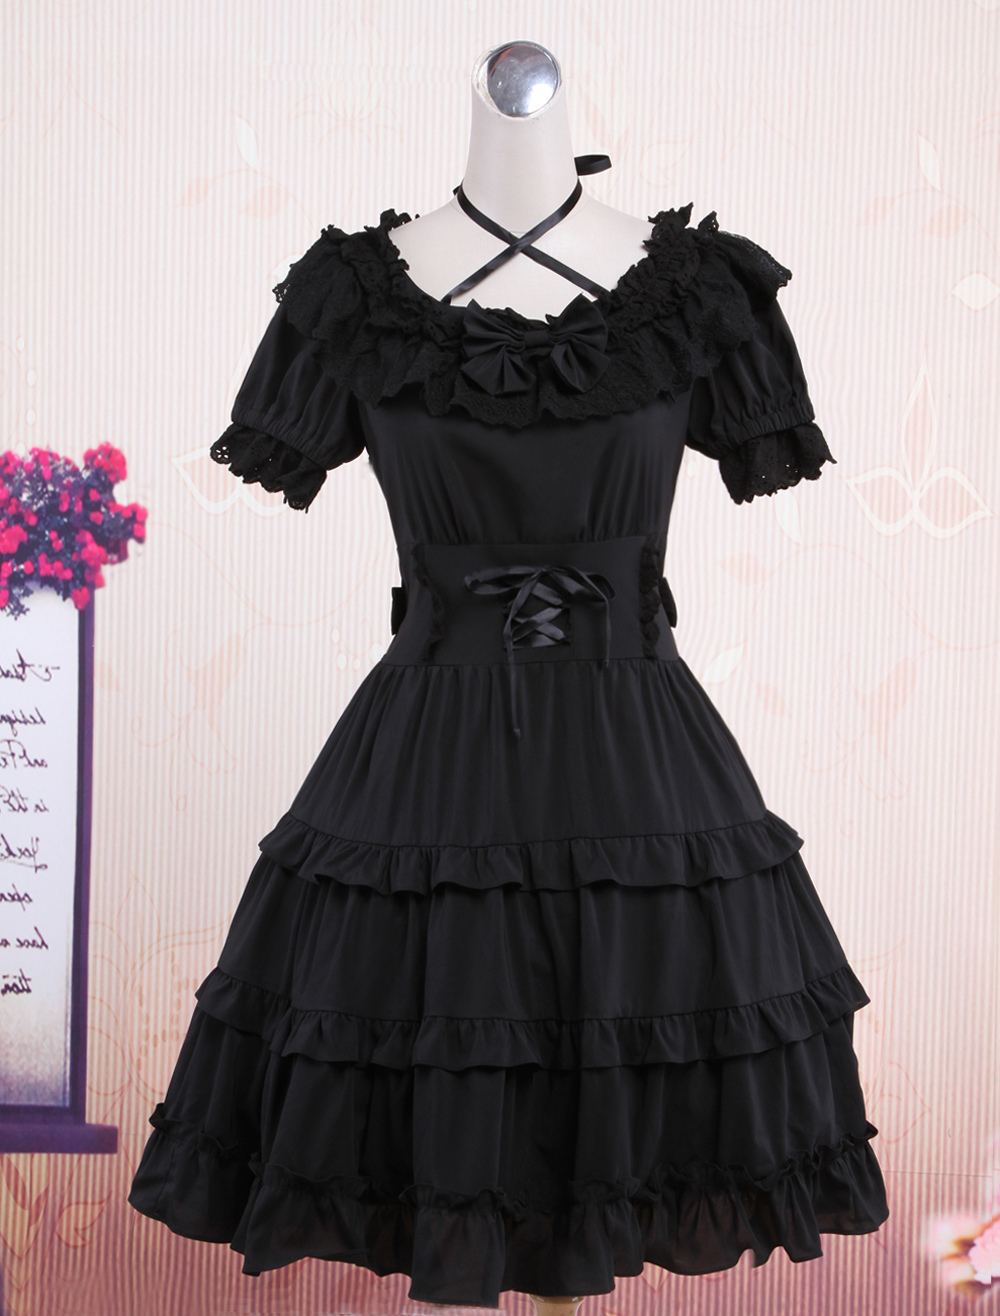 Buy Classic Black Short Sleeves Cotton Cute Lolita One-Piece for $72.19 in Milanoo store